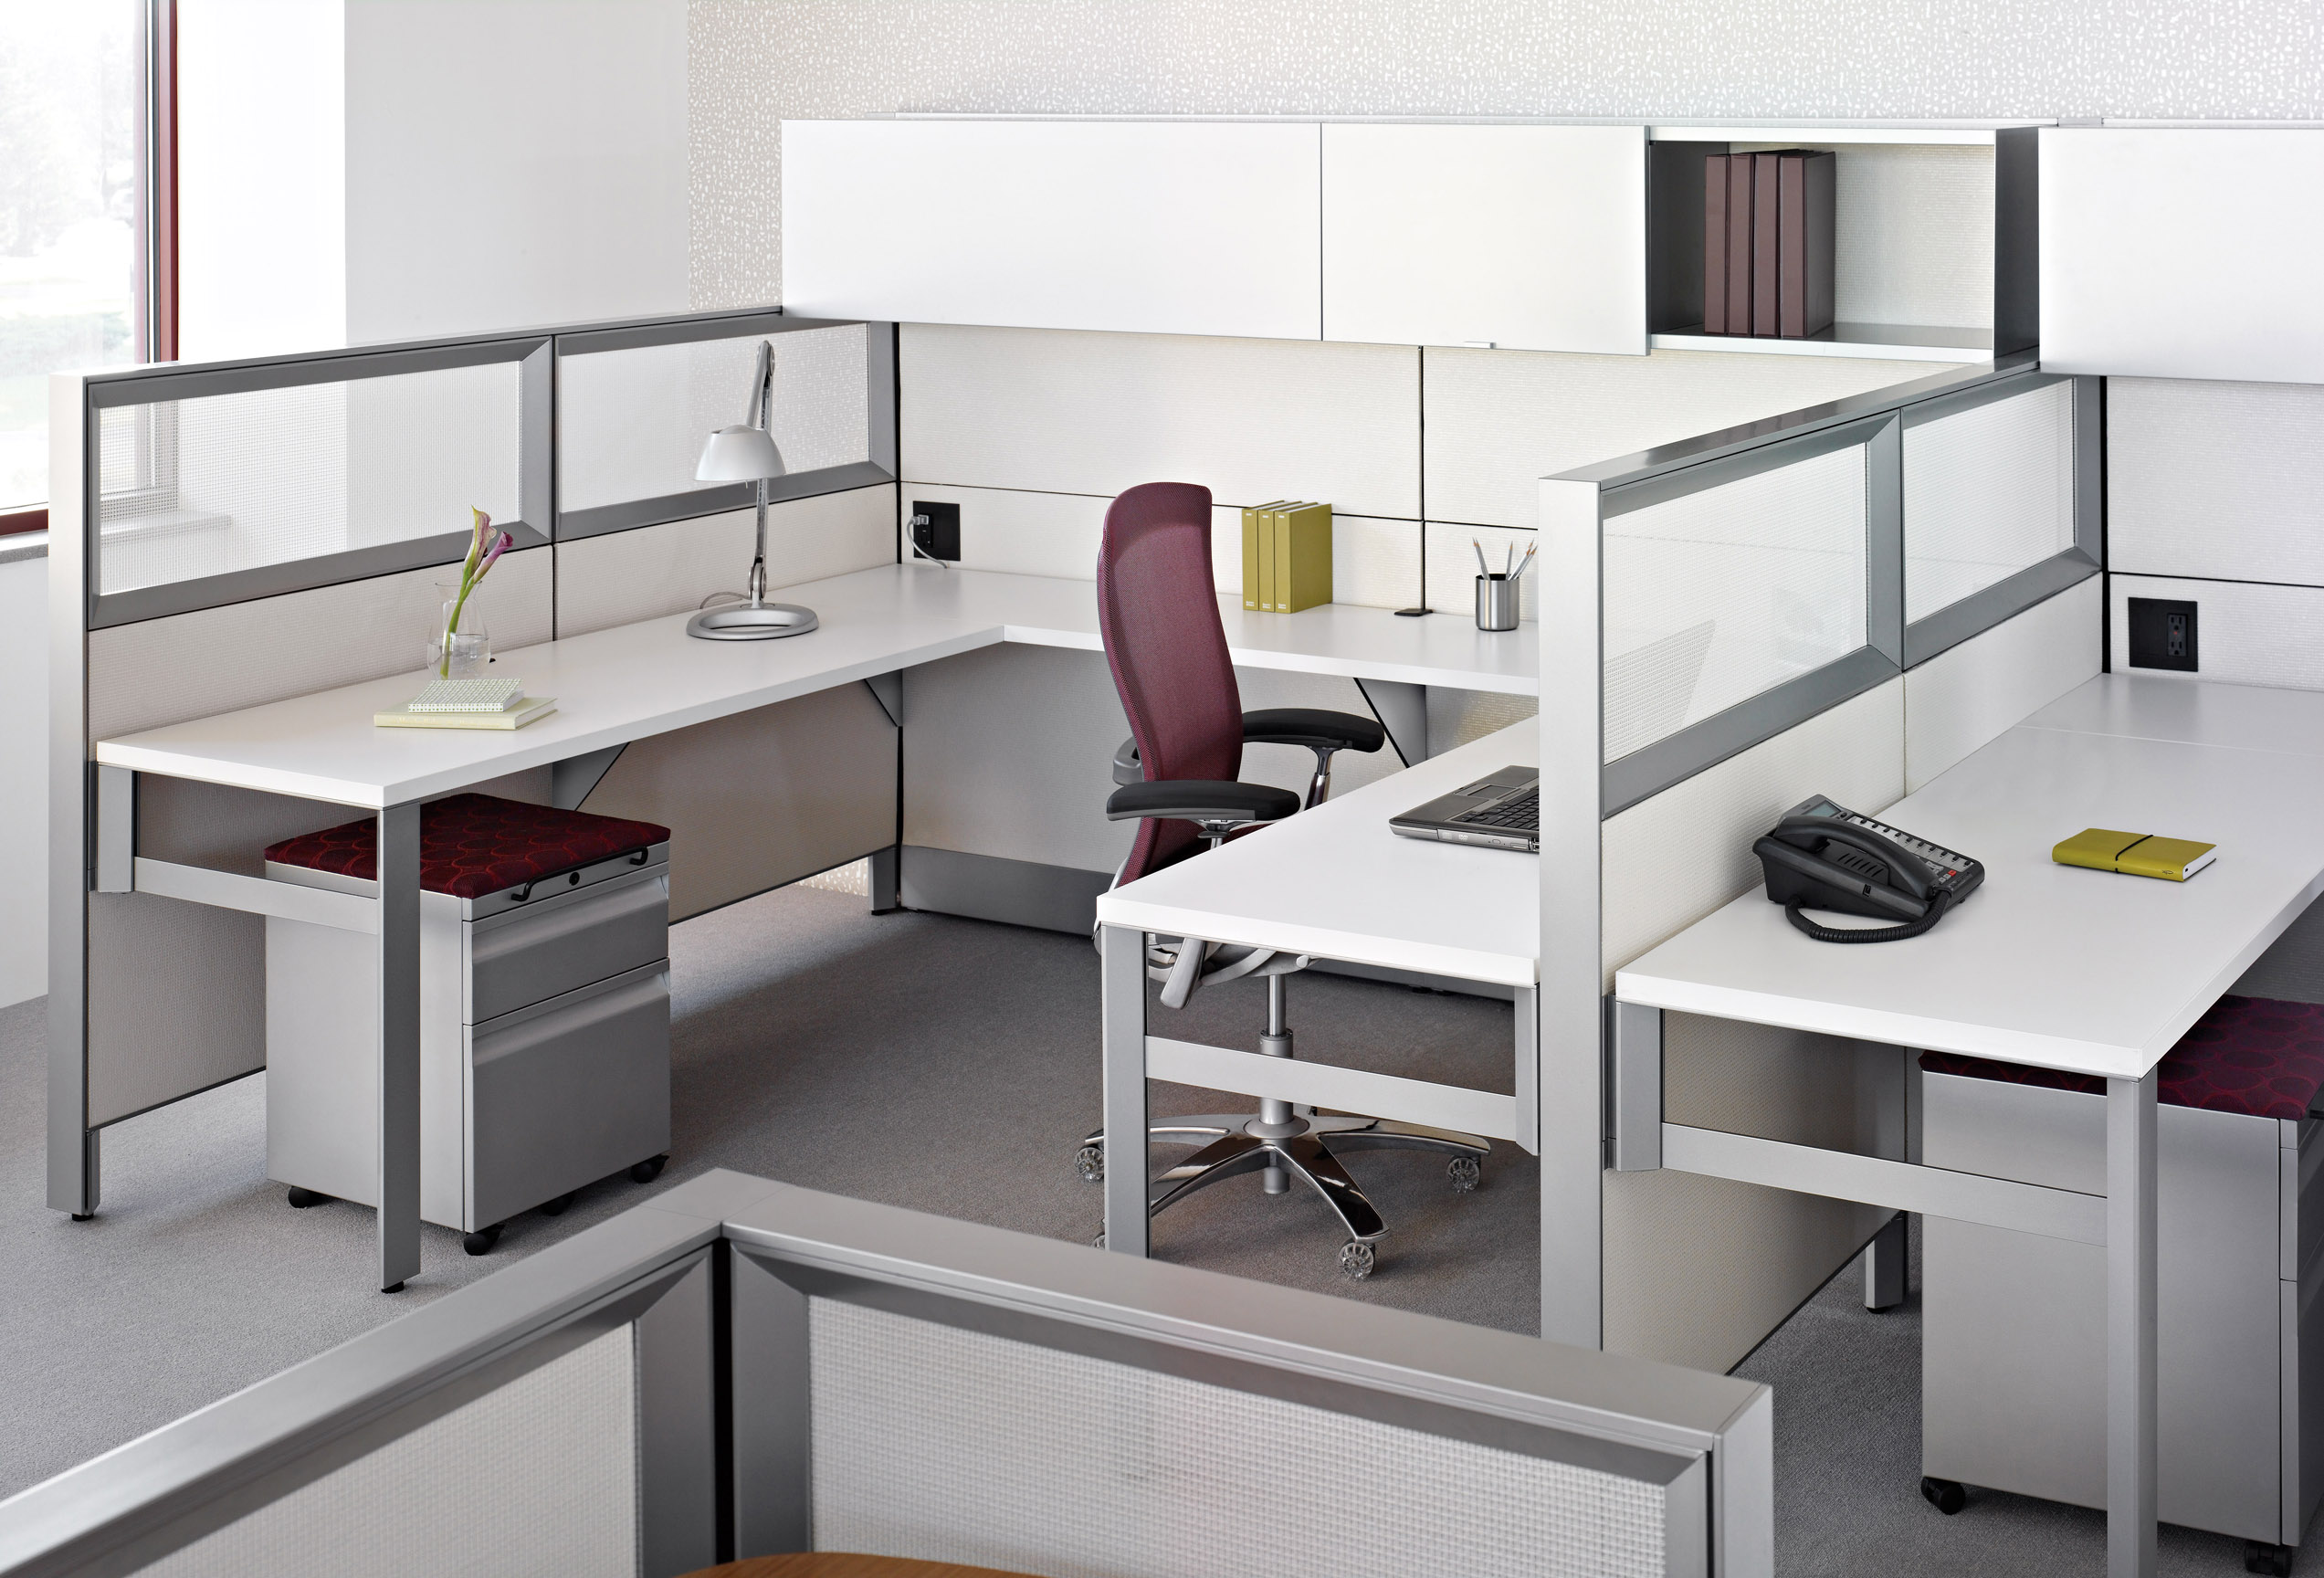 designer office desks. Room Interior Design Office Furniture Designer Desks